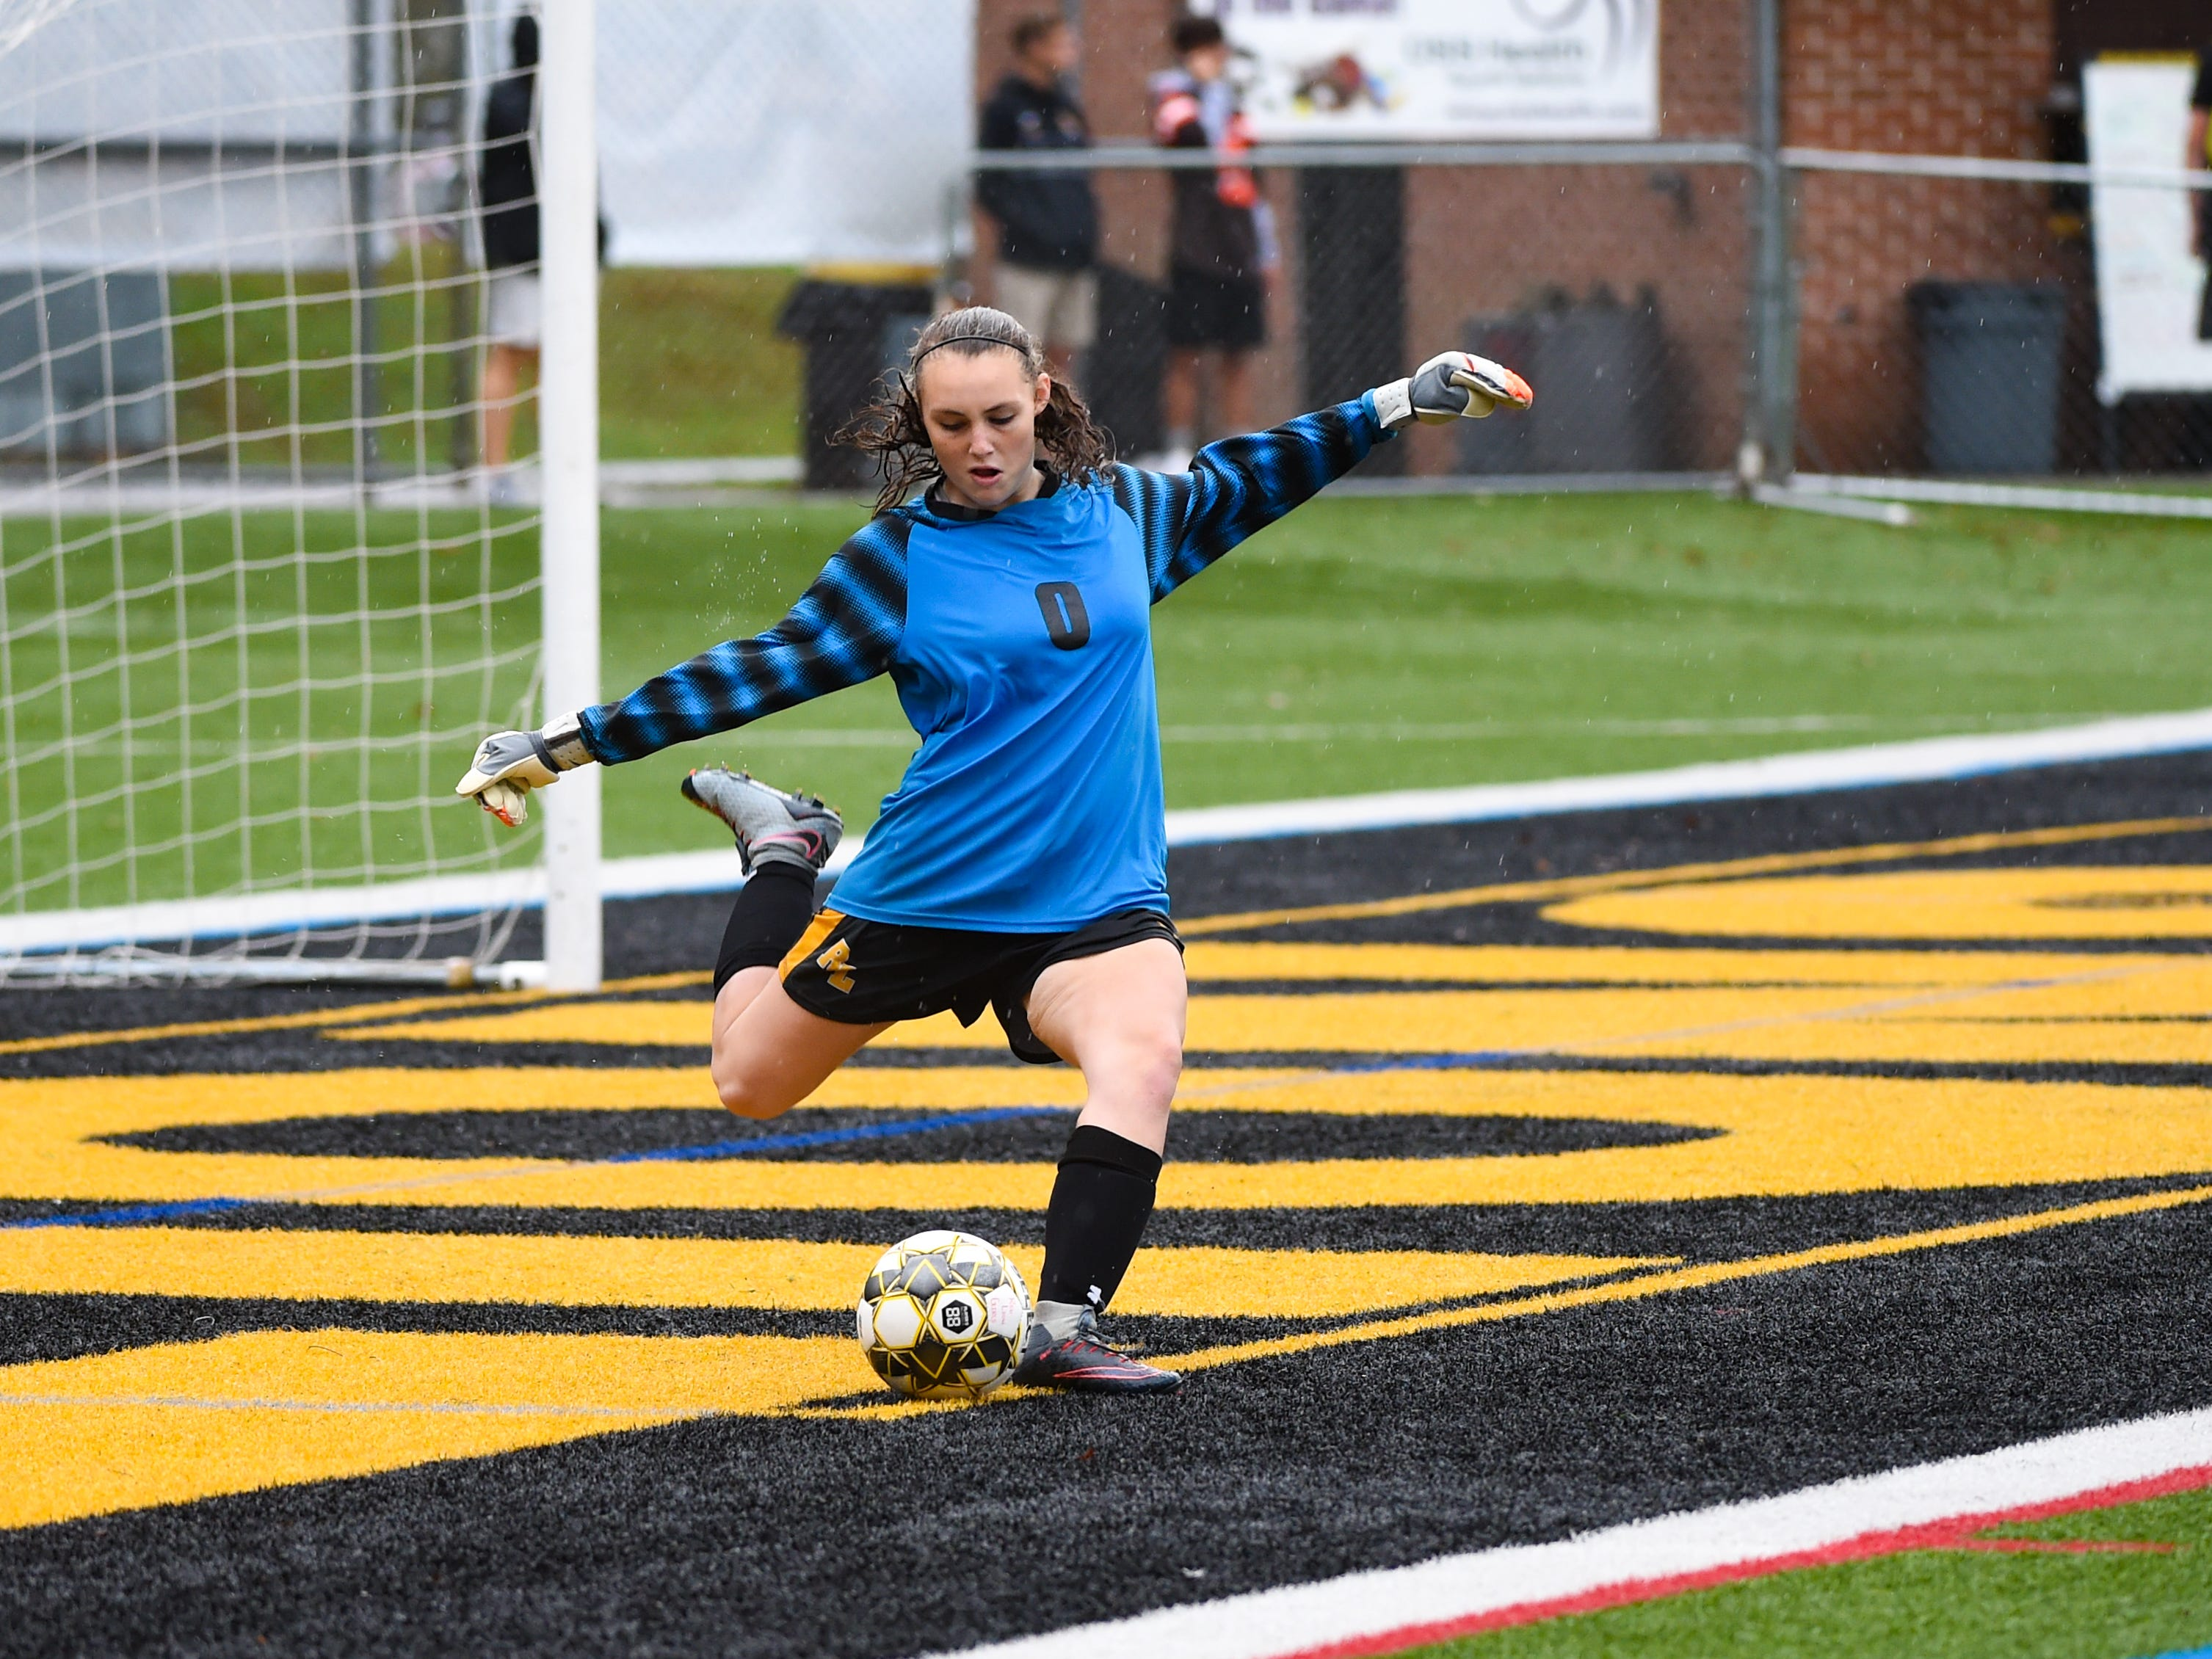 Kylyn McIntire (0) of Red Lion takes the goal kick during the girls soccer game, October 11, 2018. The Lady Lions beat the Wildcats 4-0.